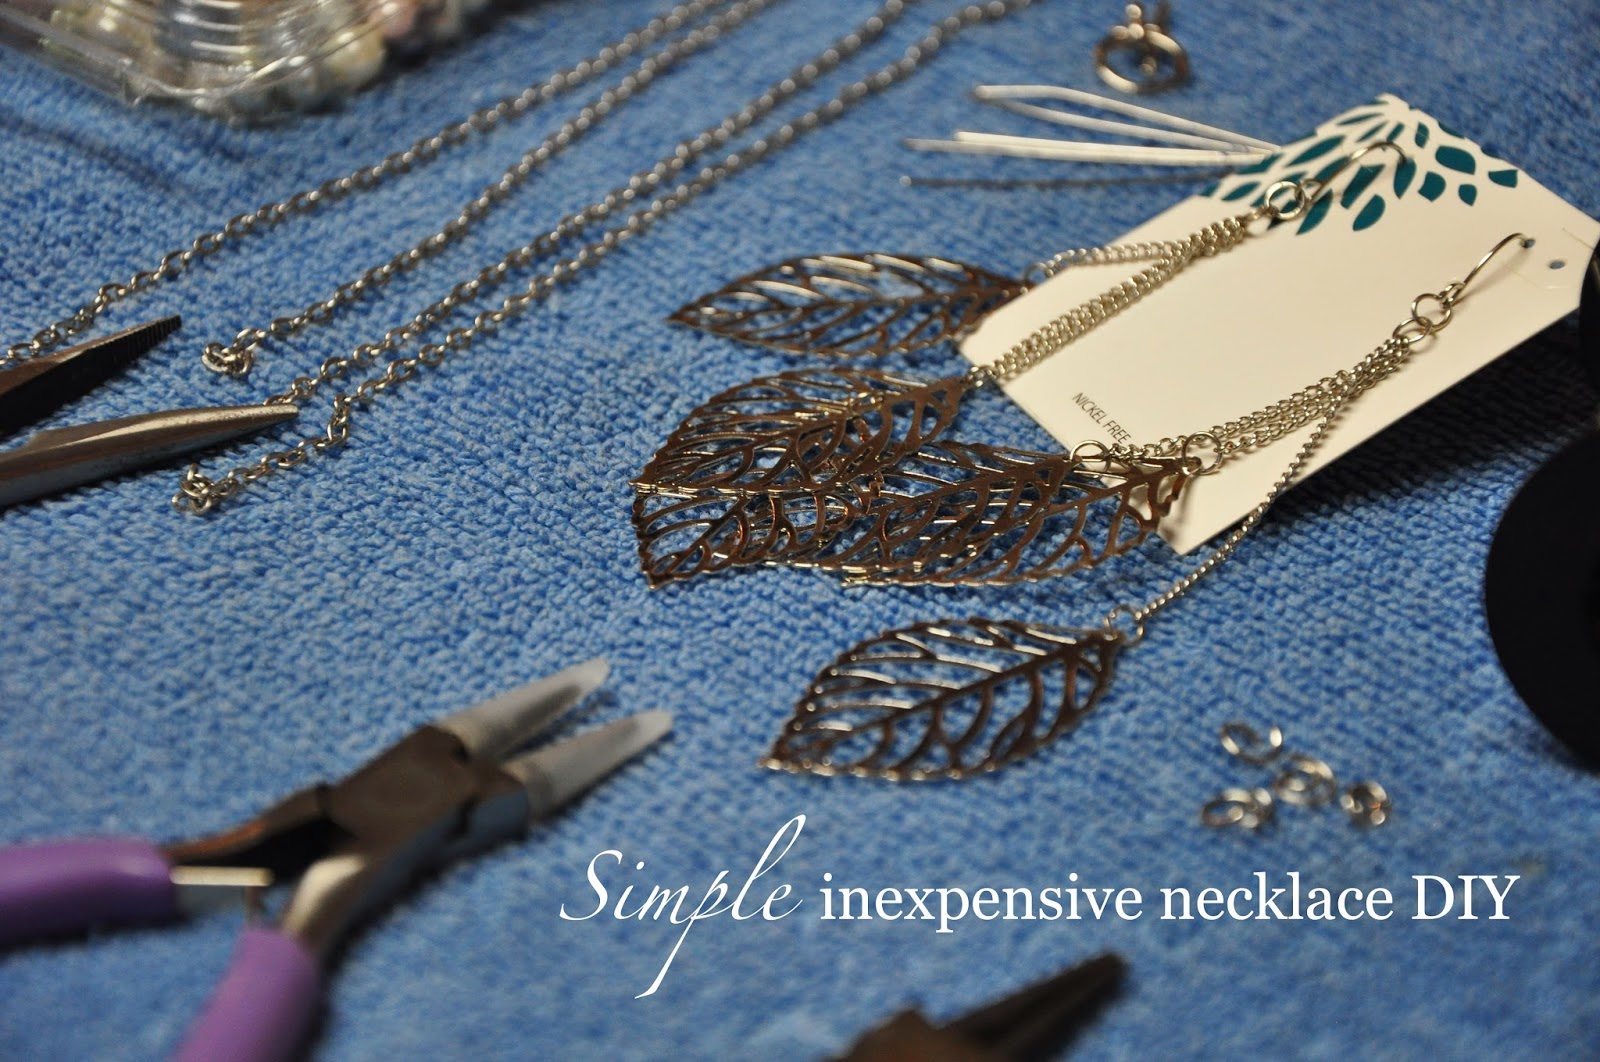 inexpensive DIY necklace @ Hickory Ridge Studio